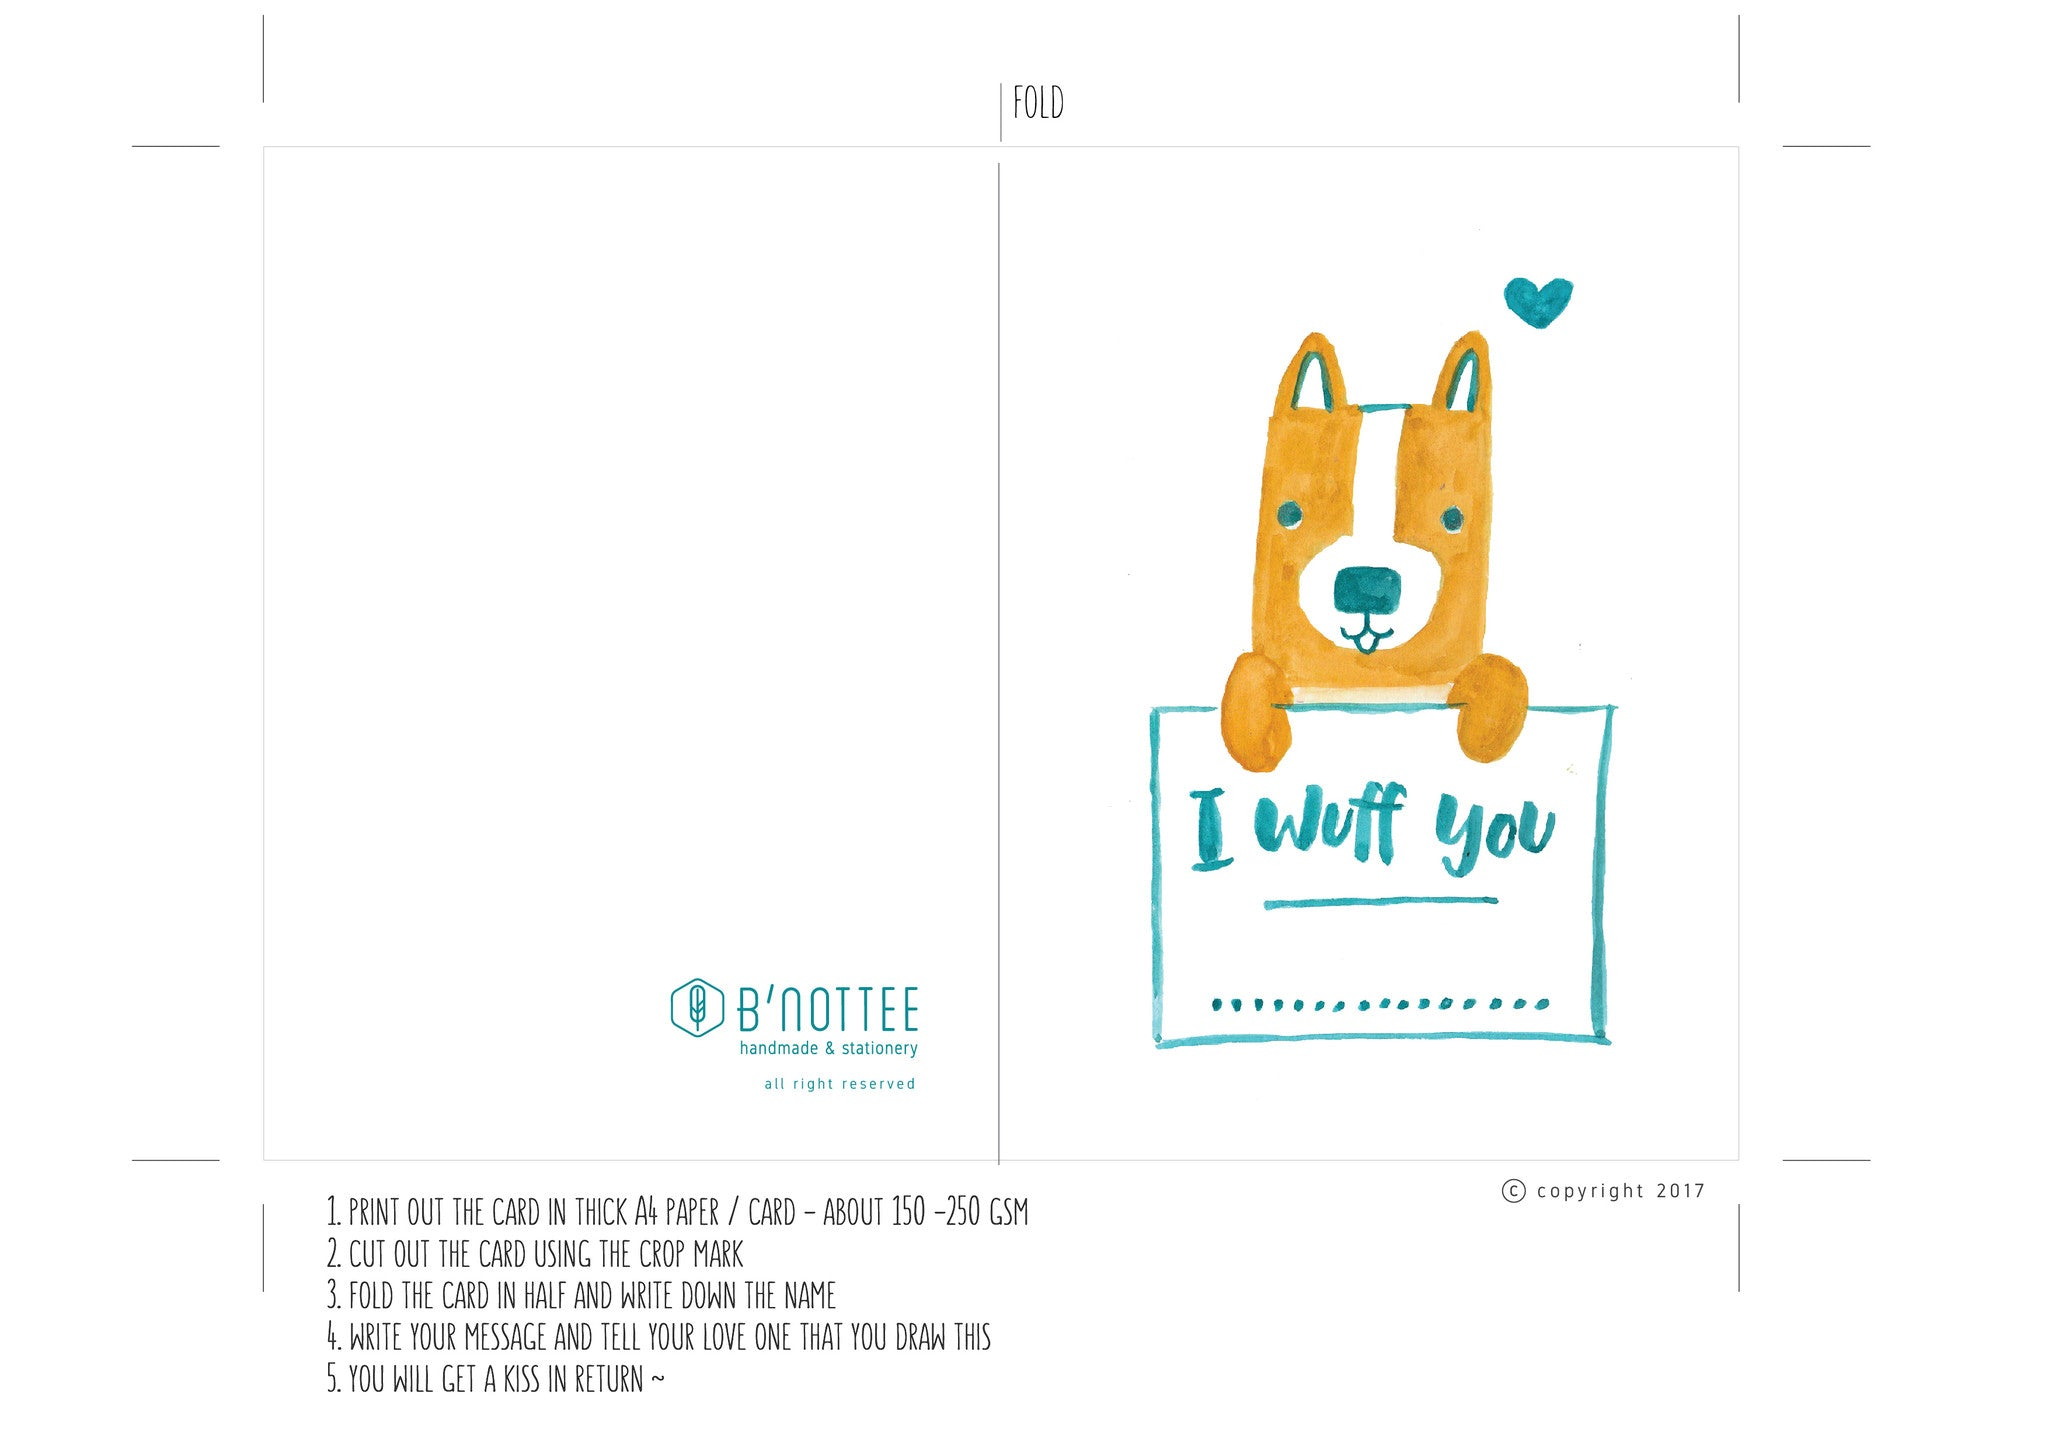 photo regarding Printable Love Card referred to as Printable I Wuff On your own Corgi Pet Appreciate Card - BNottee